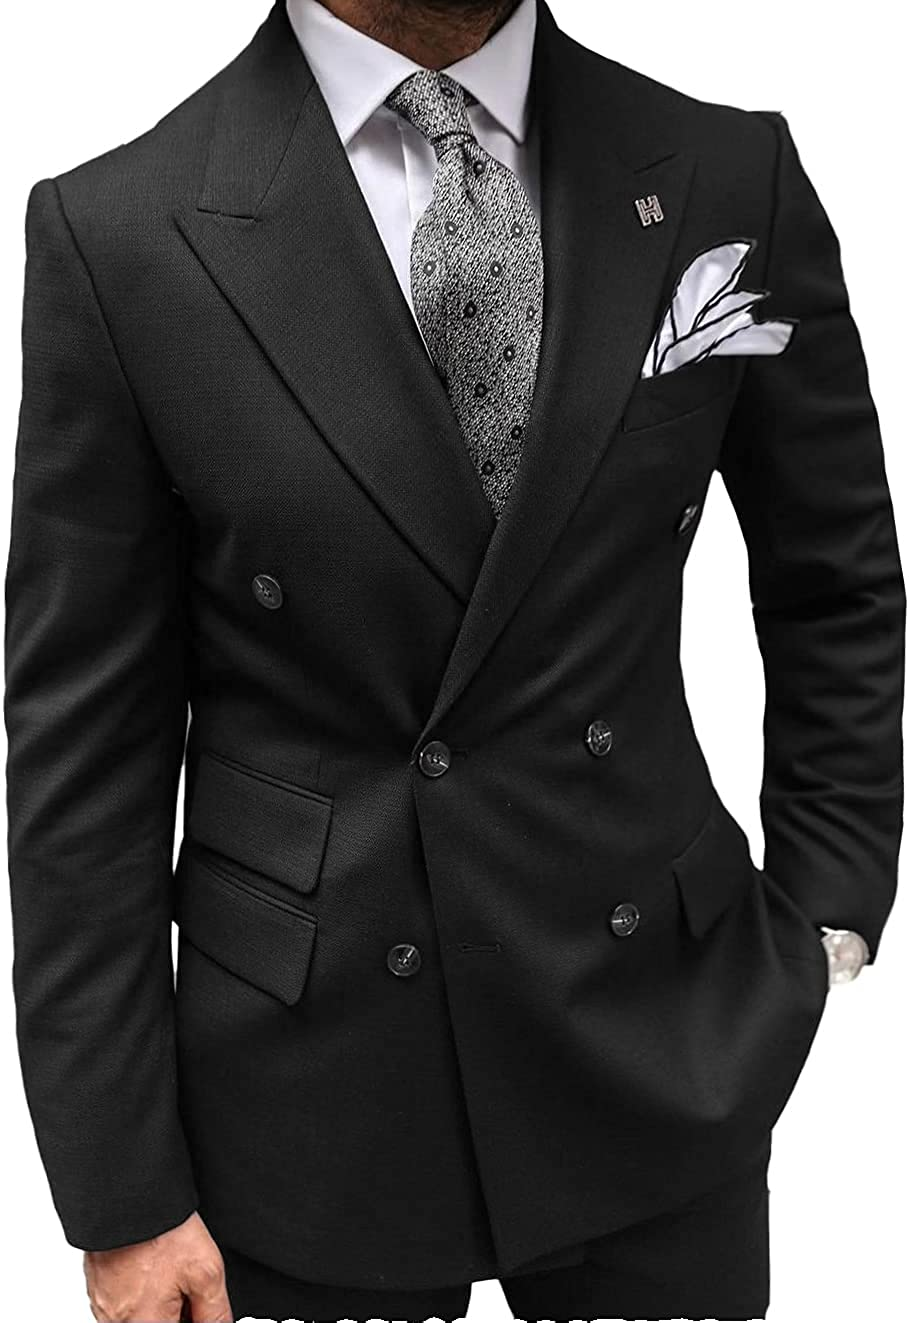 Jiaoyunshi Mens Suit Casual 2 Piece Formal for Wedding Double Breasted Business Prom Grooms Tuxedos Jacket +Pant